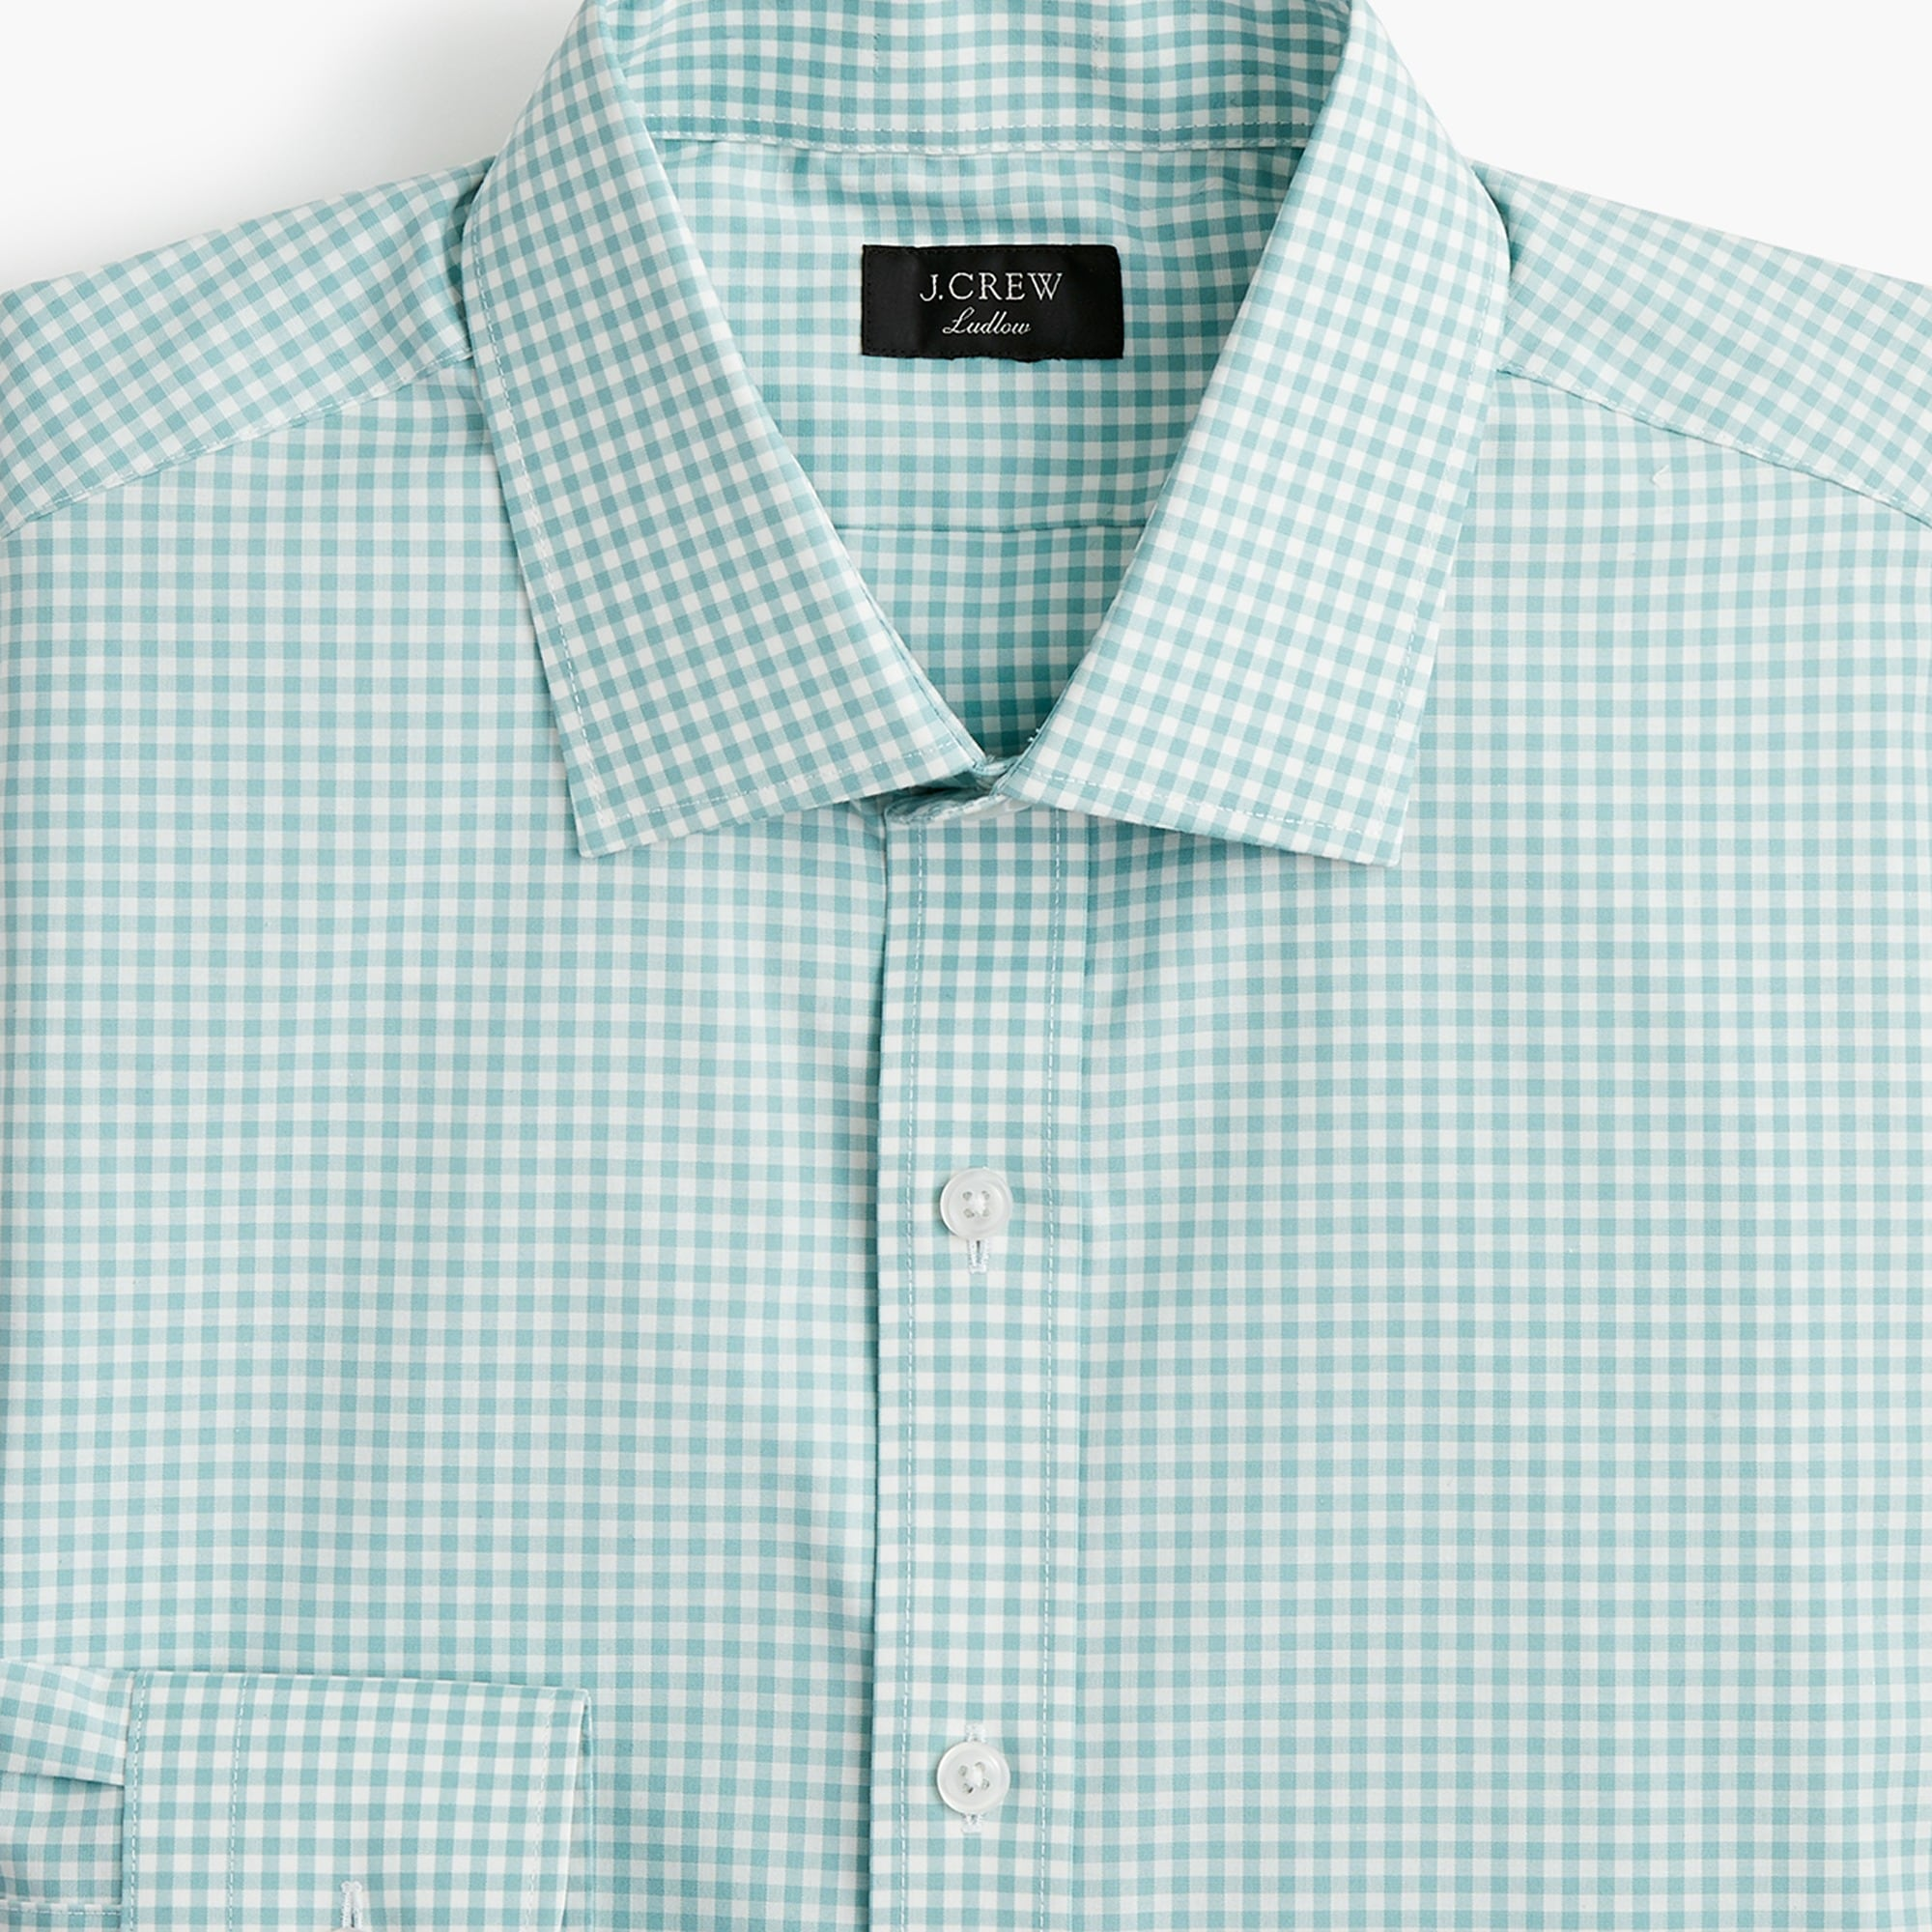 Ludlow stretch two-ply easy-care cotton dress shirt in aqua gingham